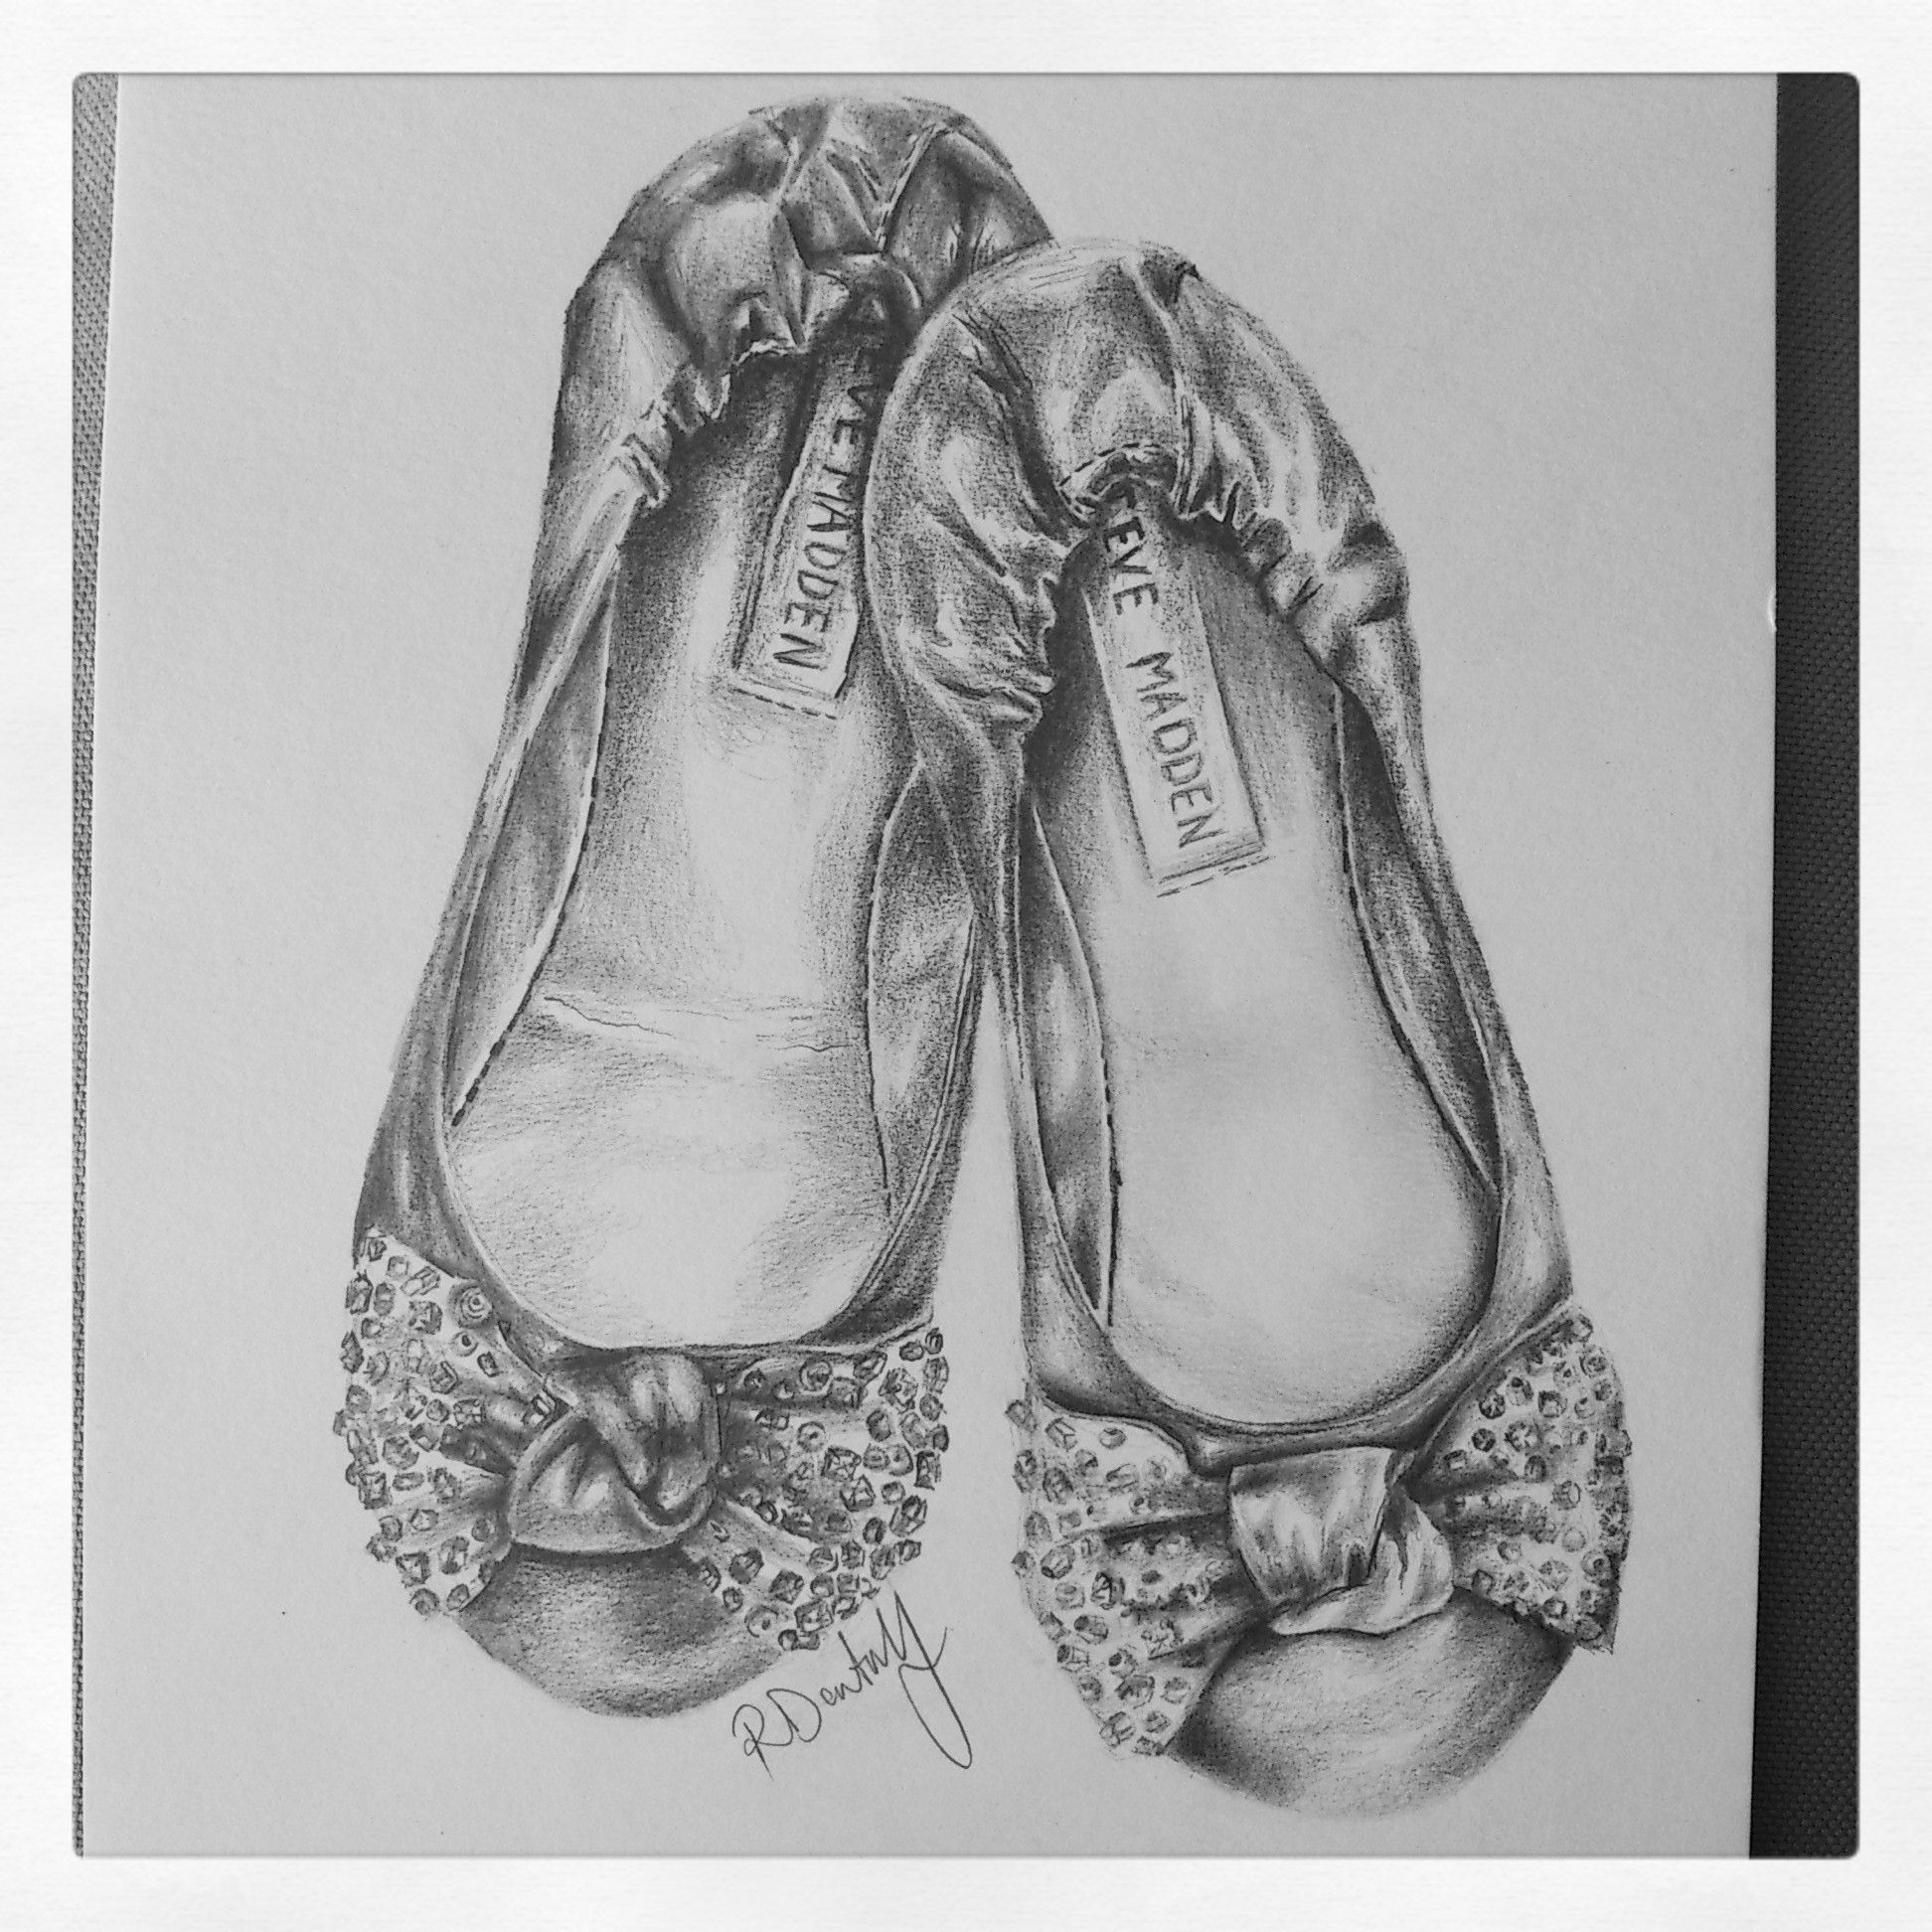 Pencil sketch by Roxanne Jade Dentry - STEVE MADDEN BLING BOW PUMPS &#124; my  art and creative side <3 &#124; Pinterest &#124; Sketches